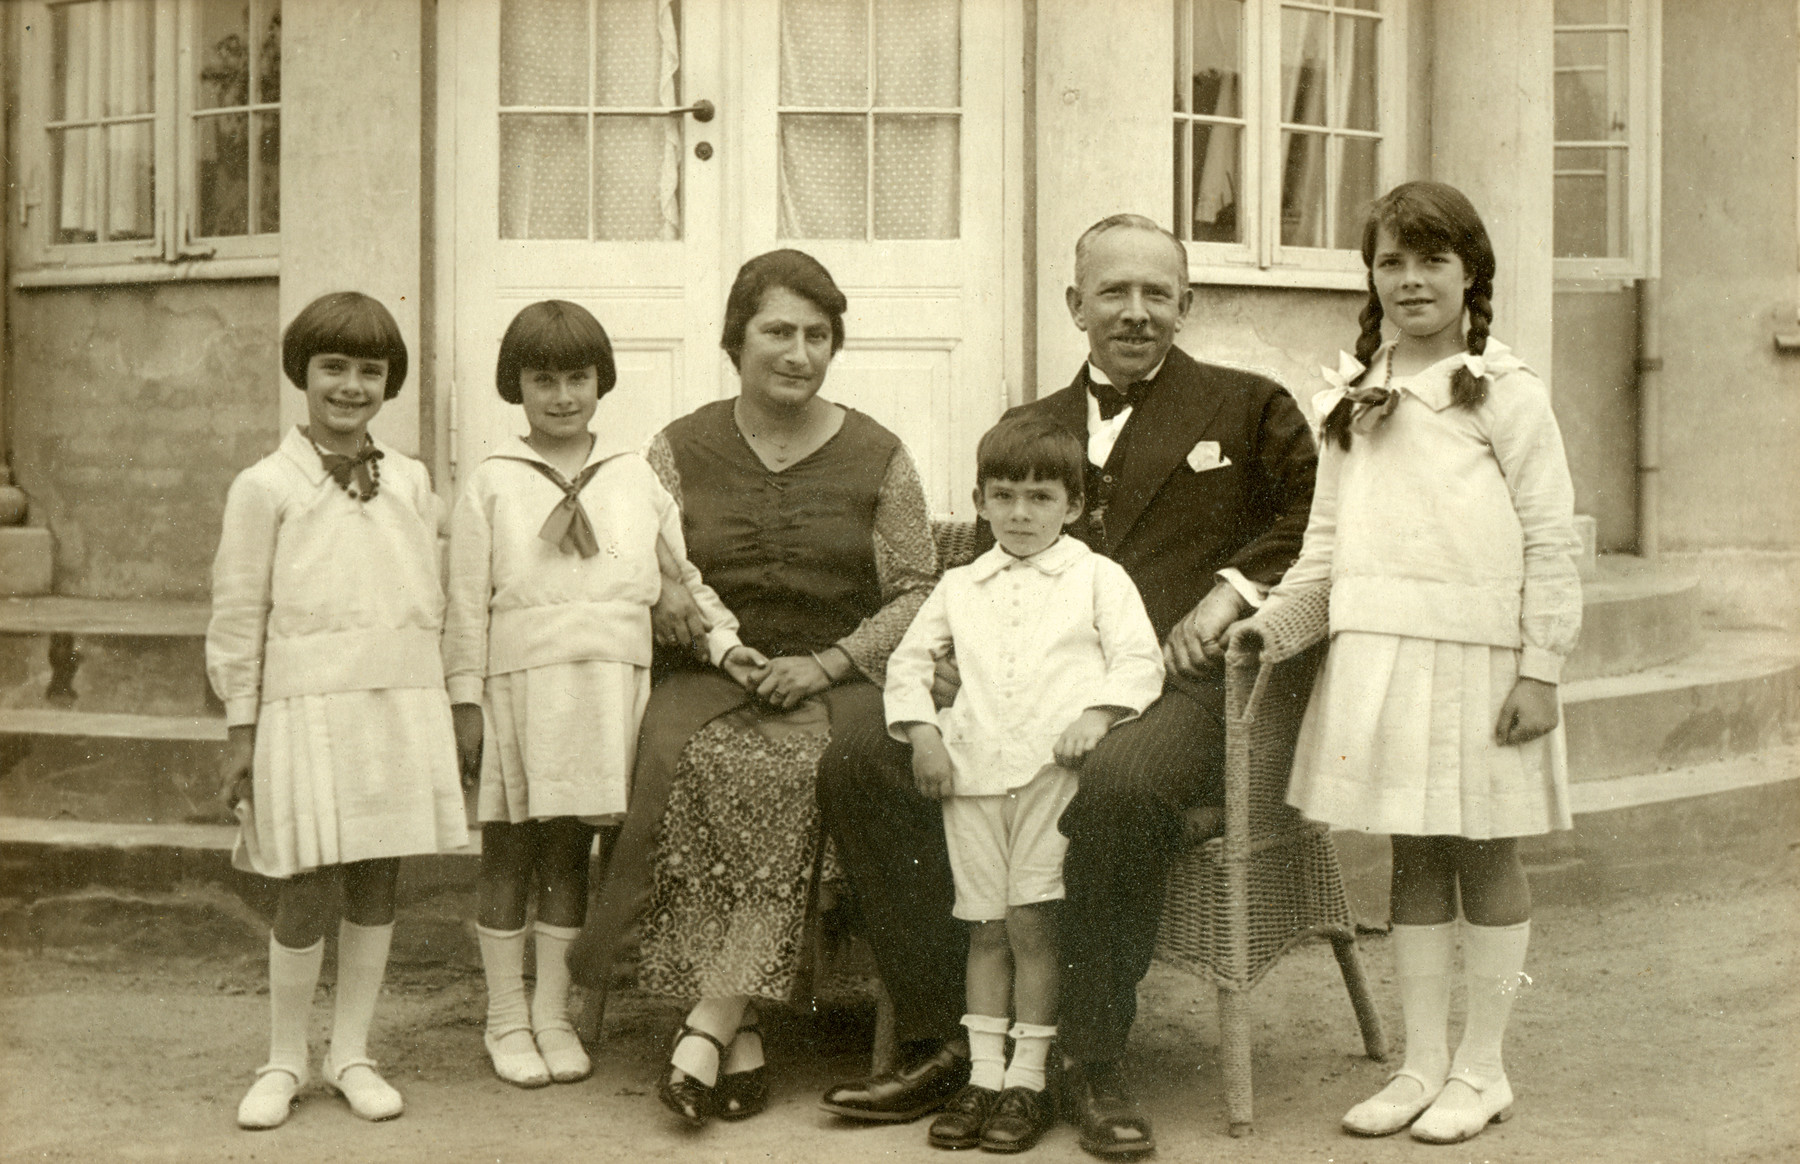 The Oestermann family celebrates Moritz Oestermann's fiftieth birthday in a mansion they rented for the occasion.  Pictured are Margot, Lillian, Gertrud, Richard, Moritz and Else Oestermann.